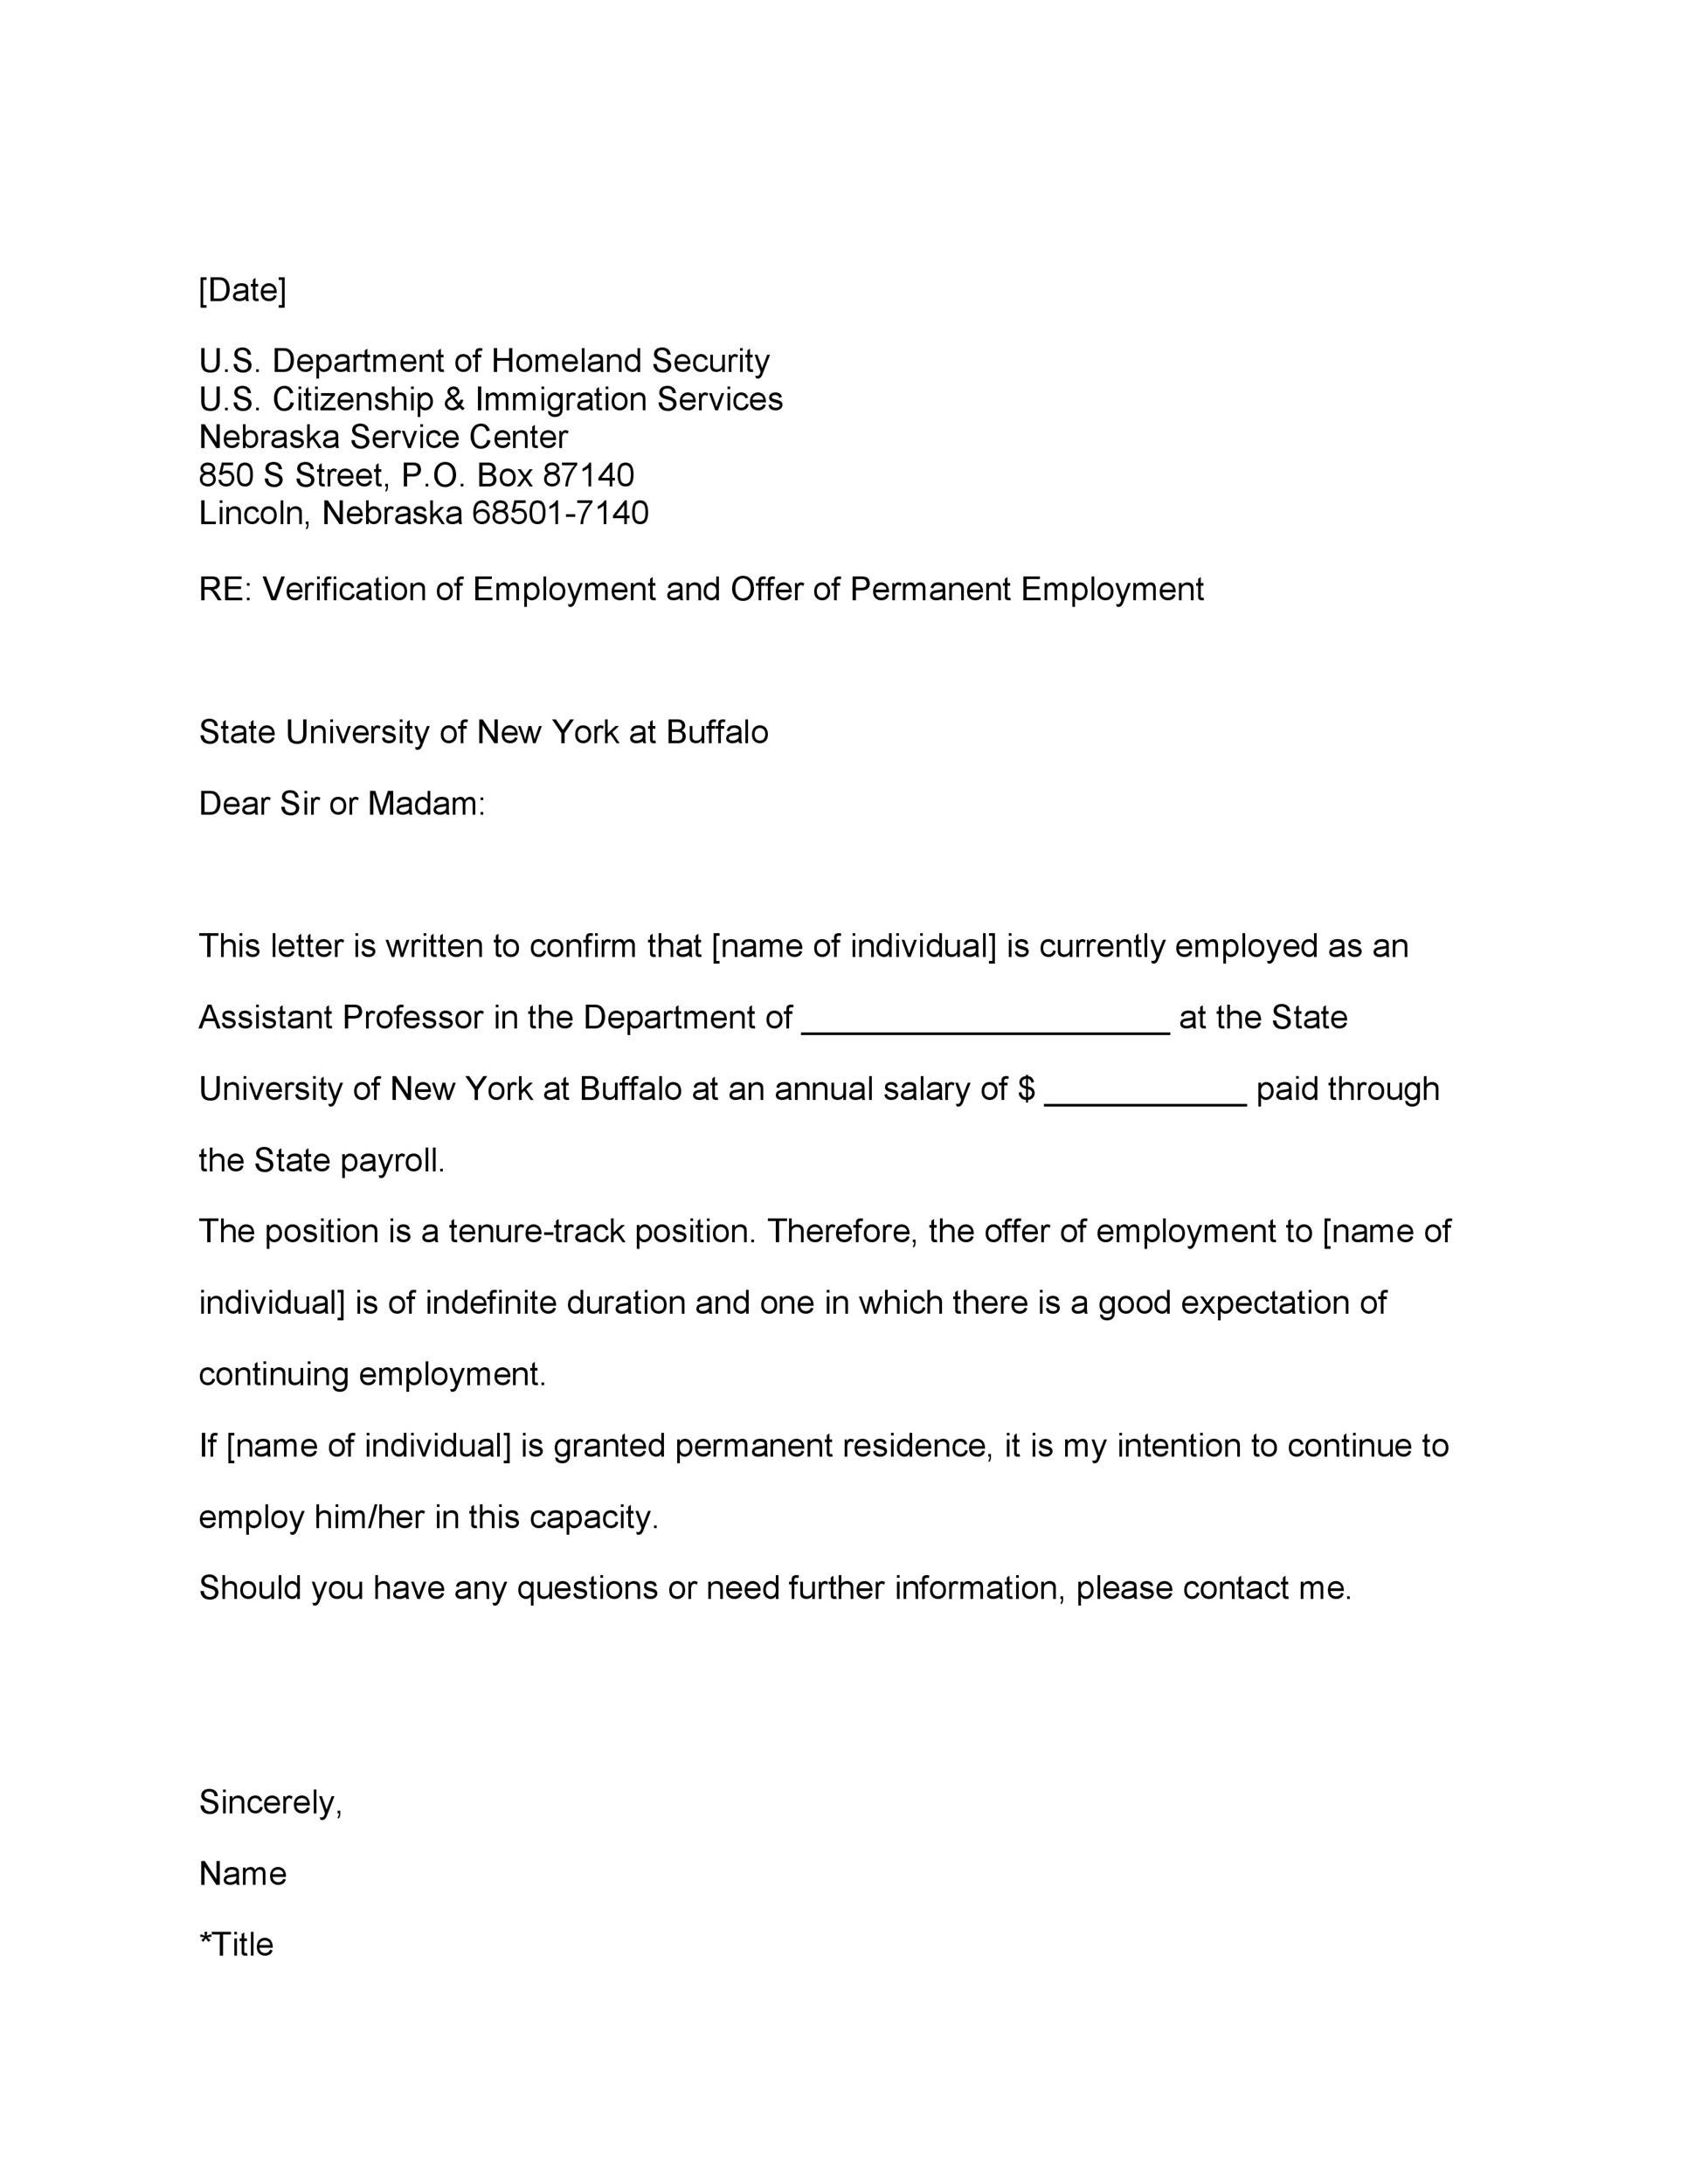 Job Verification Letter Template from lh4.googleusercontent.com